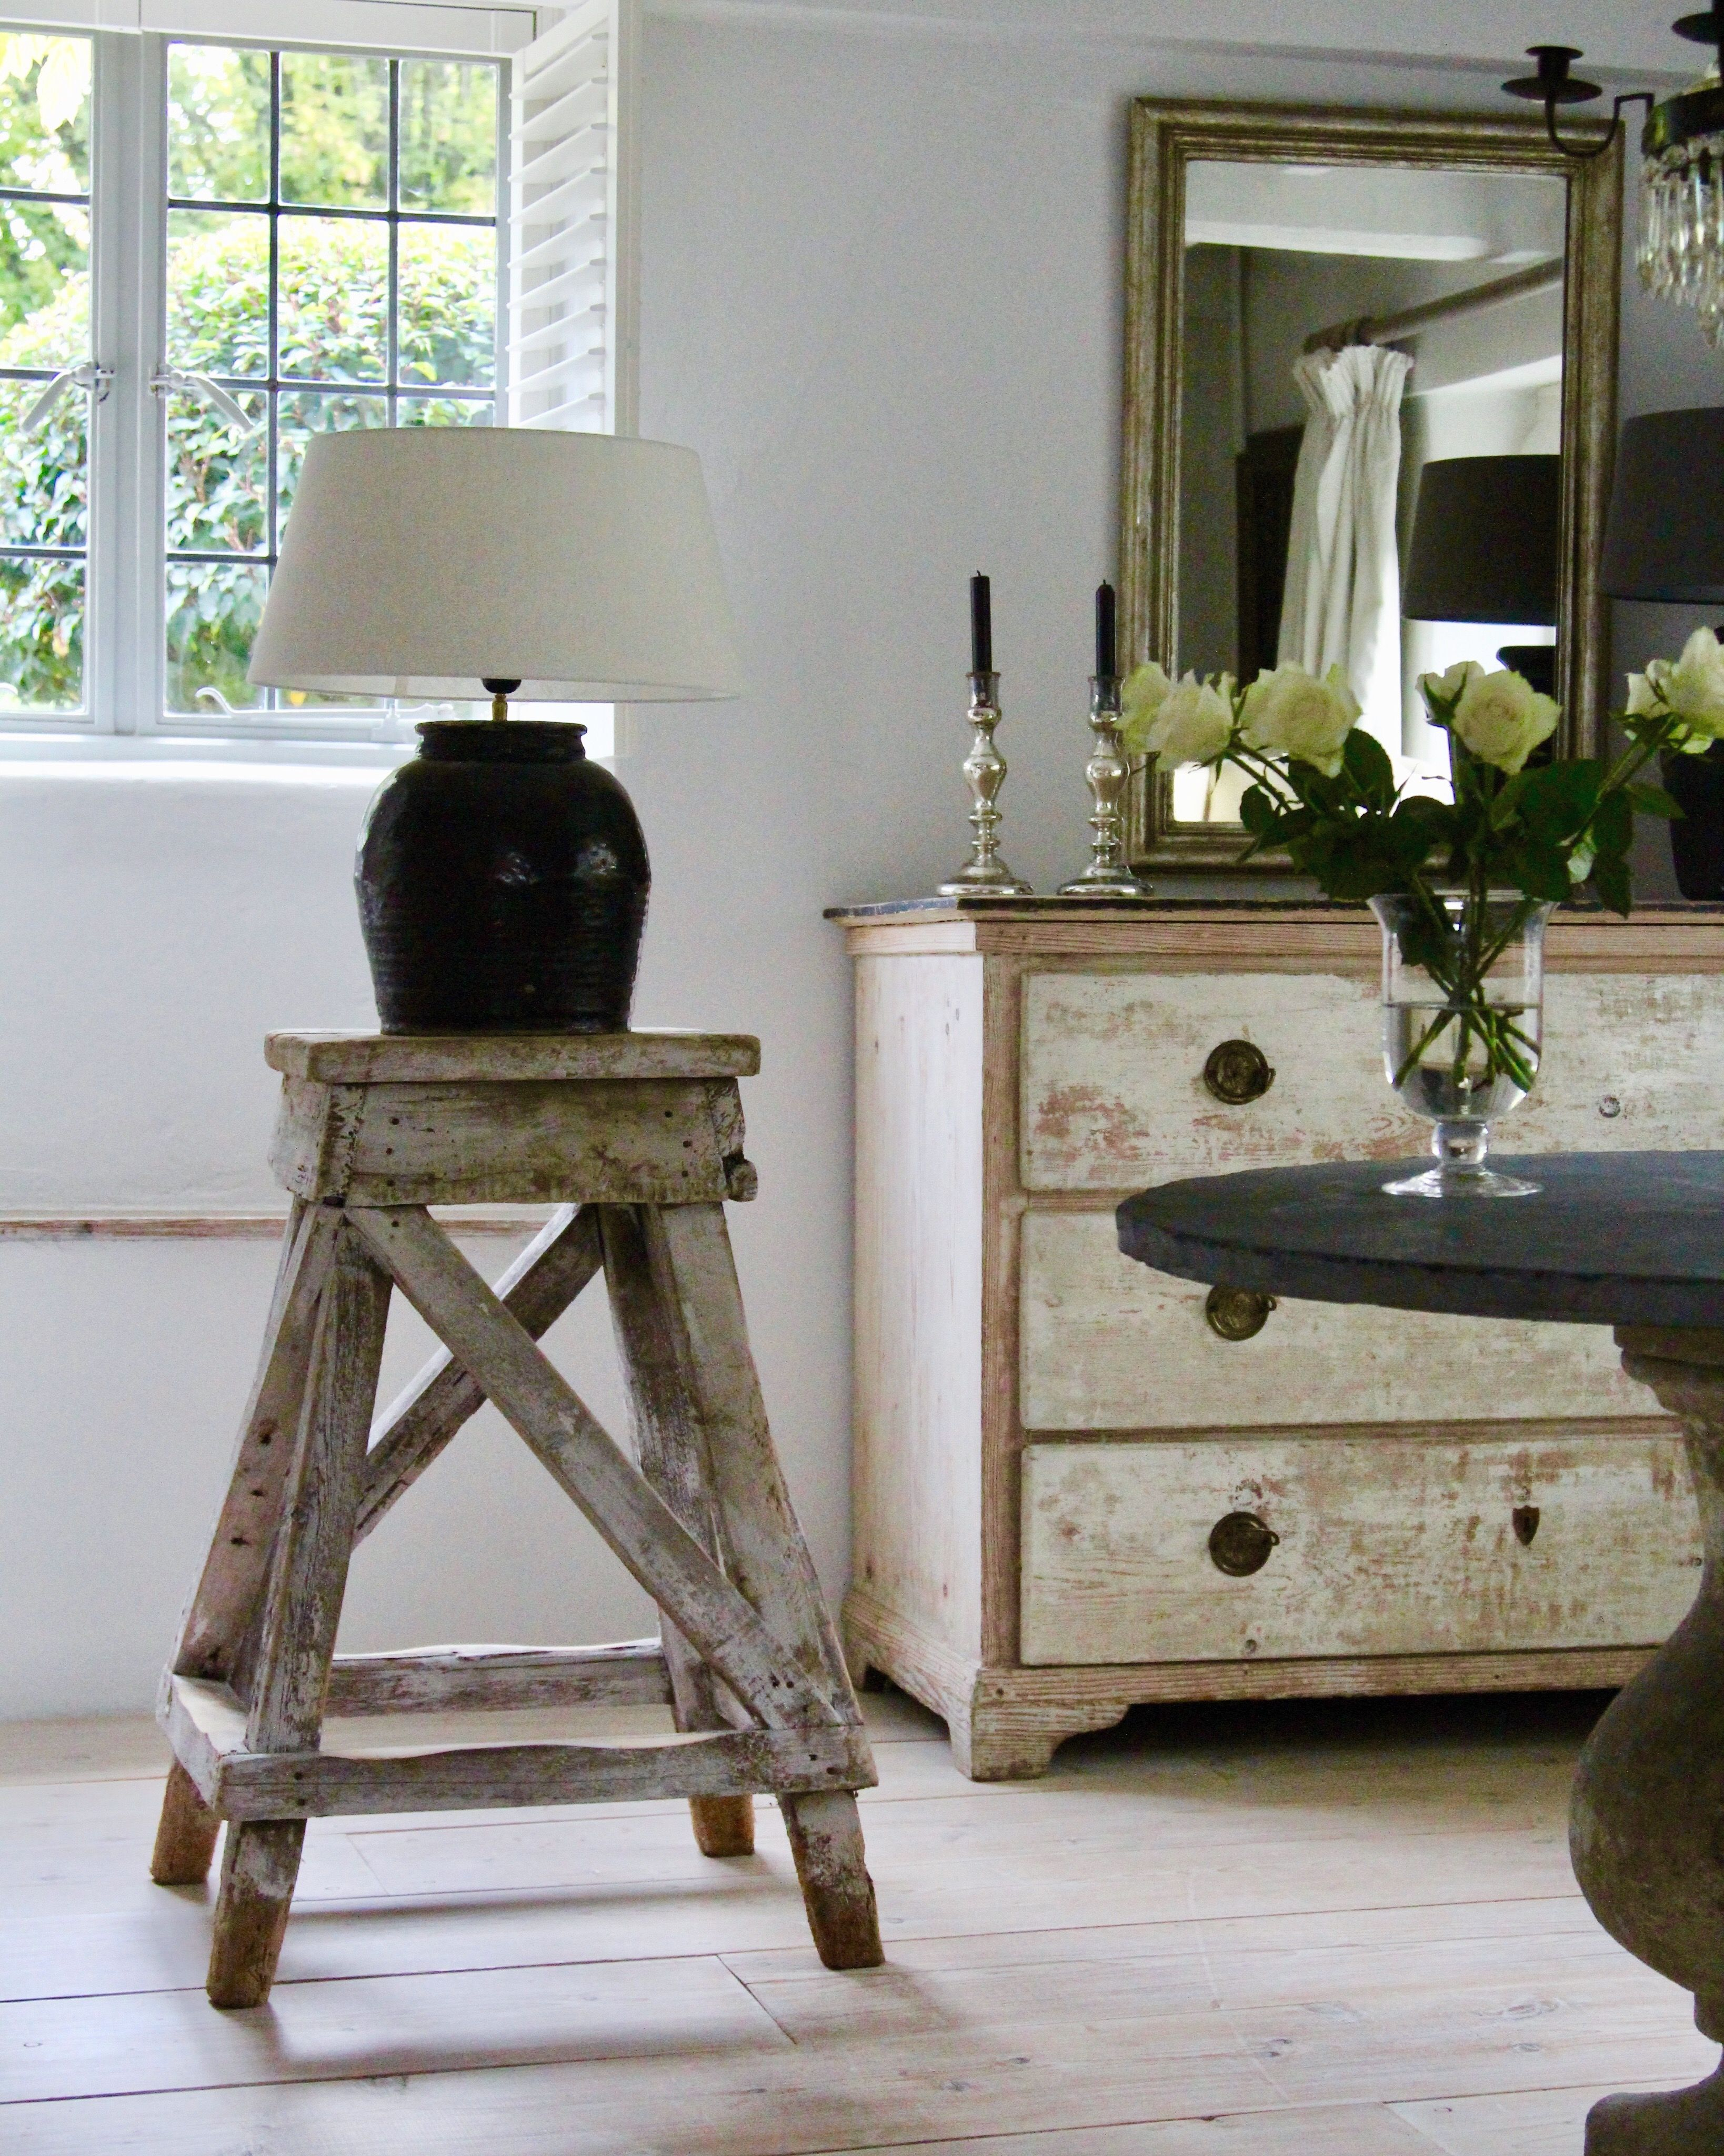 Anton & K Antiques,New Arrivals Gustavian furniture